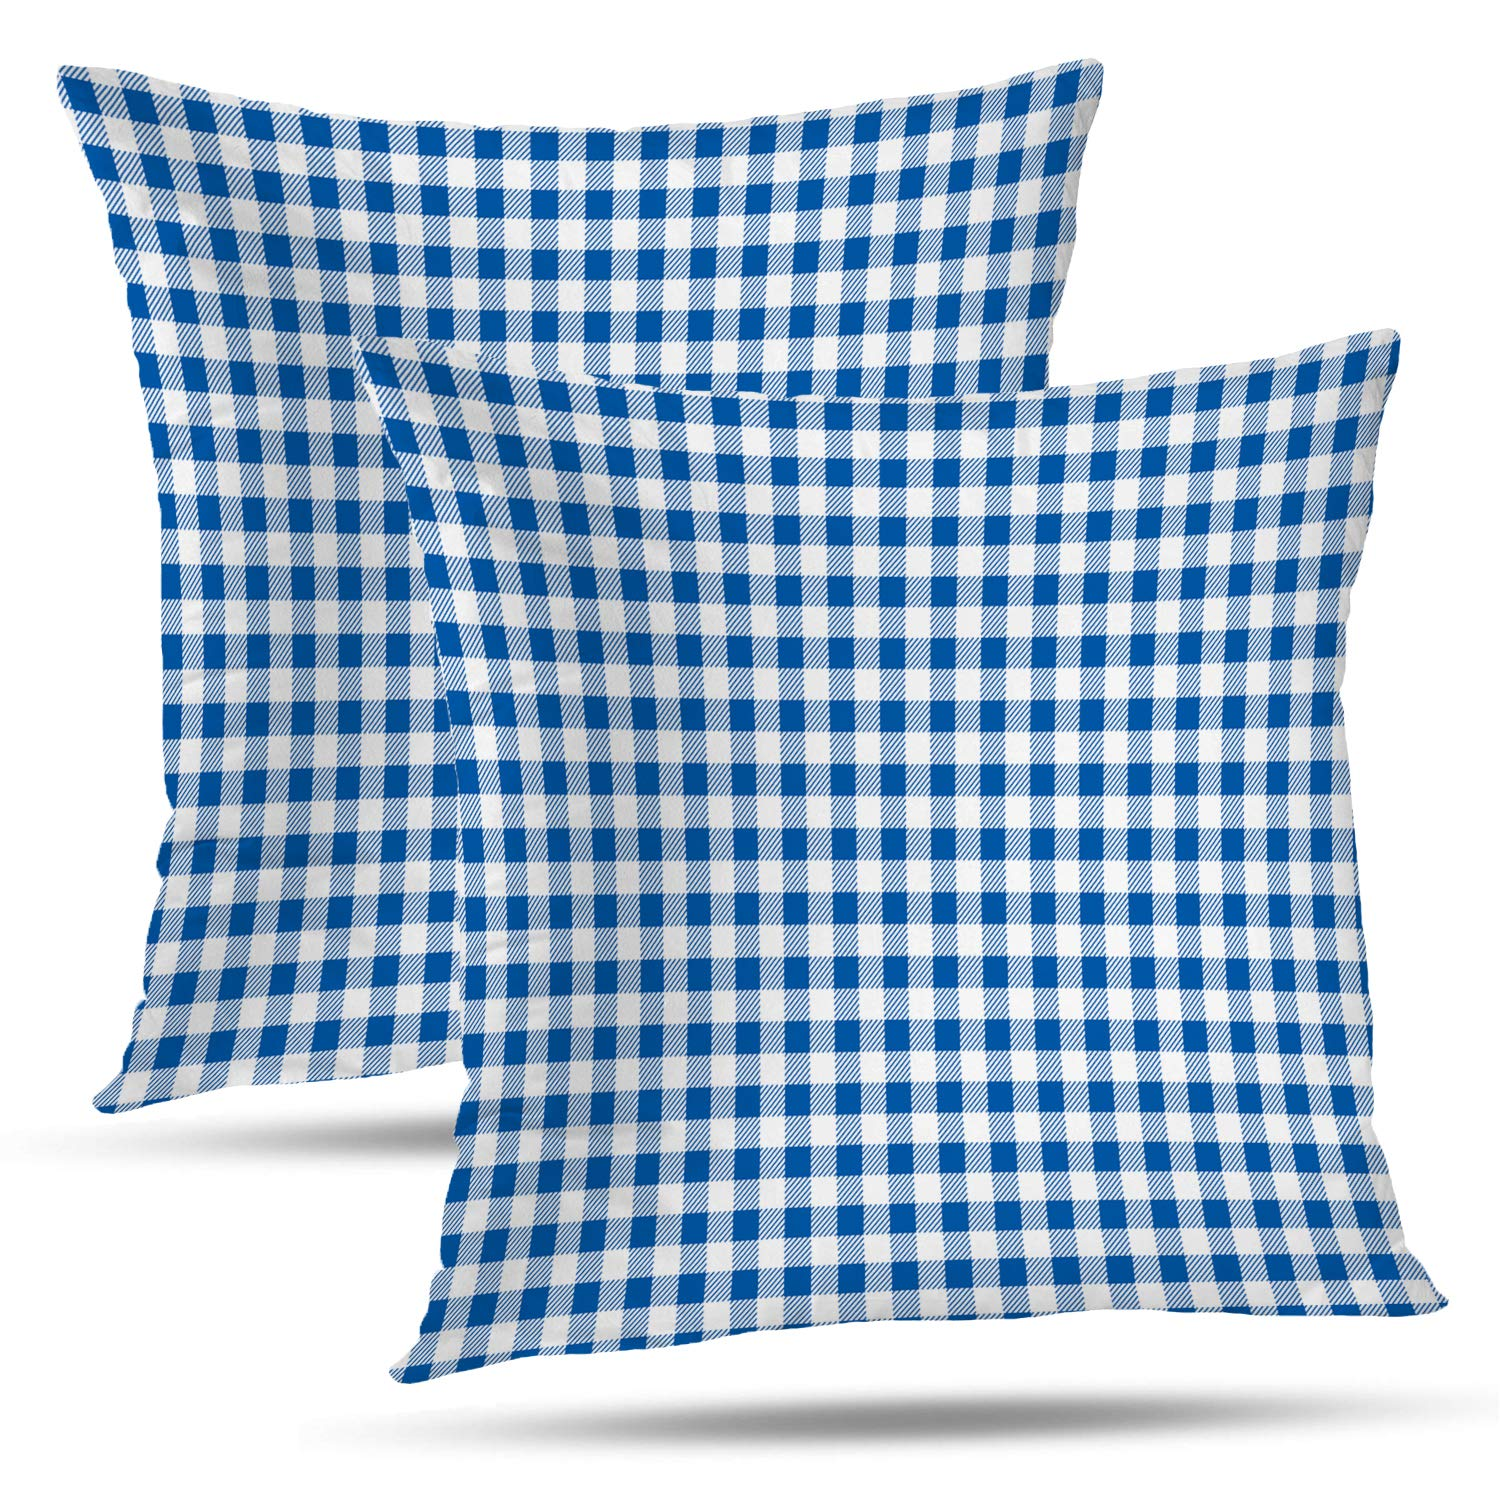 Excellent Batmerry Gingham Pillow Covers 18X18 Inch Set Of 2 Blue And White Checkered Fabric Design Double Sided Decorative Pillows Cases Throw Pillows Covers Ibusinesslaw Wood Chair Design Ideas Ibusinesslaworg